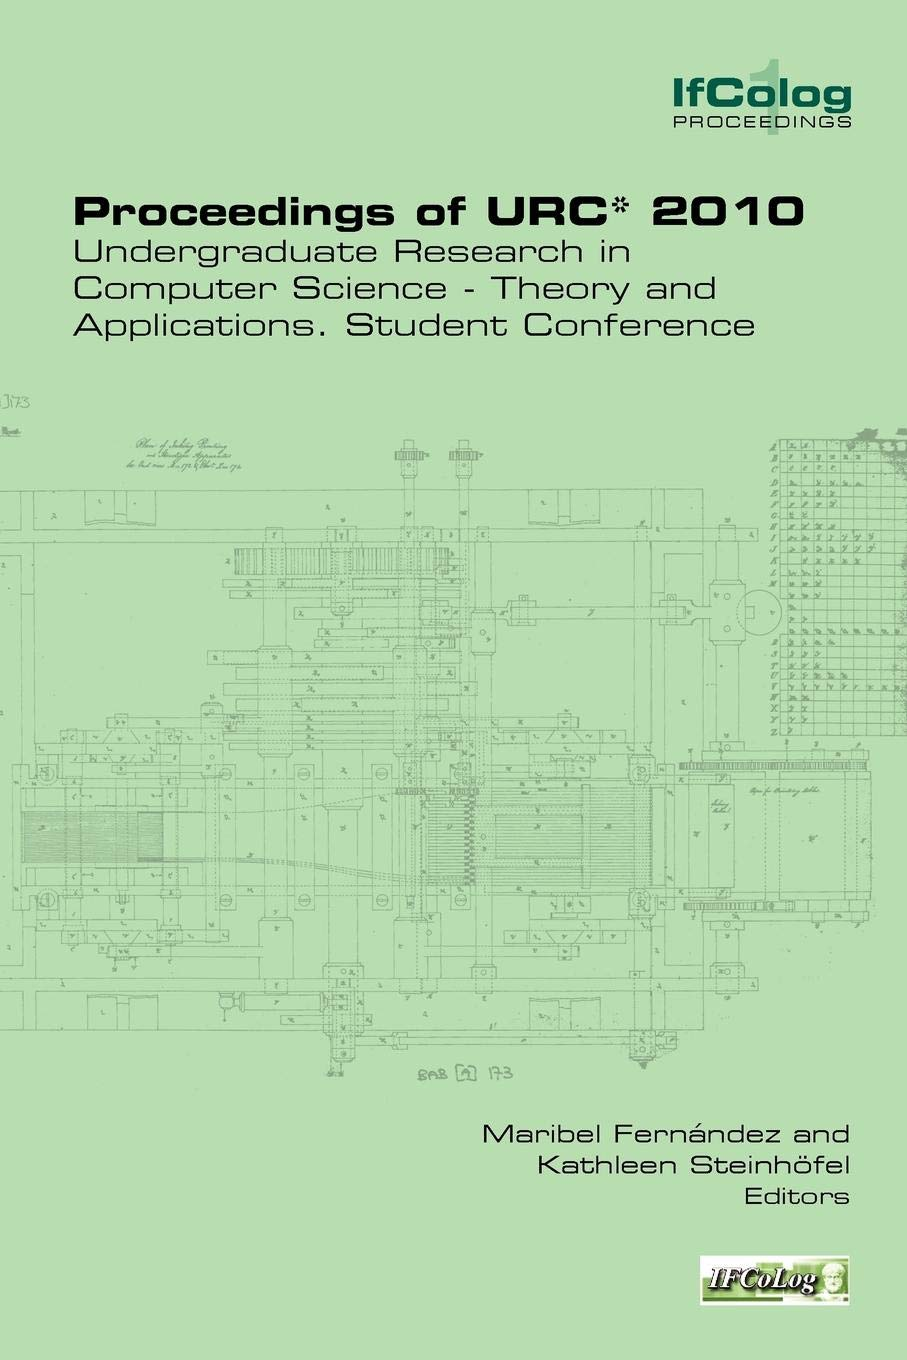 Download Proceedings of Urc* 2010. Undergraduate Research in Computer Science - Theory and Applications. Student Conference PDF